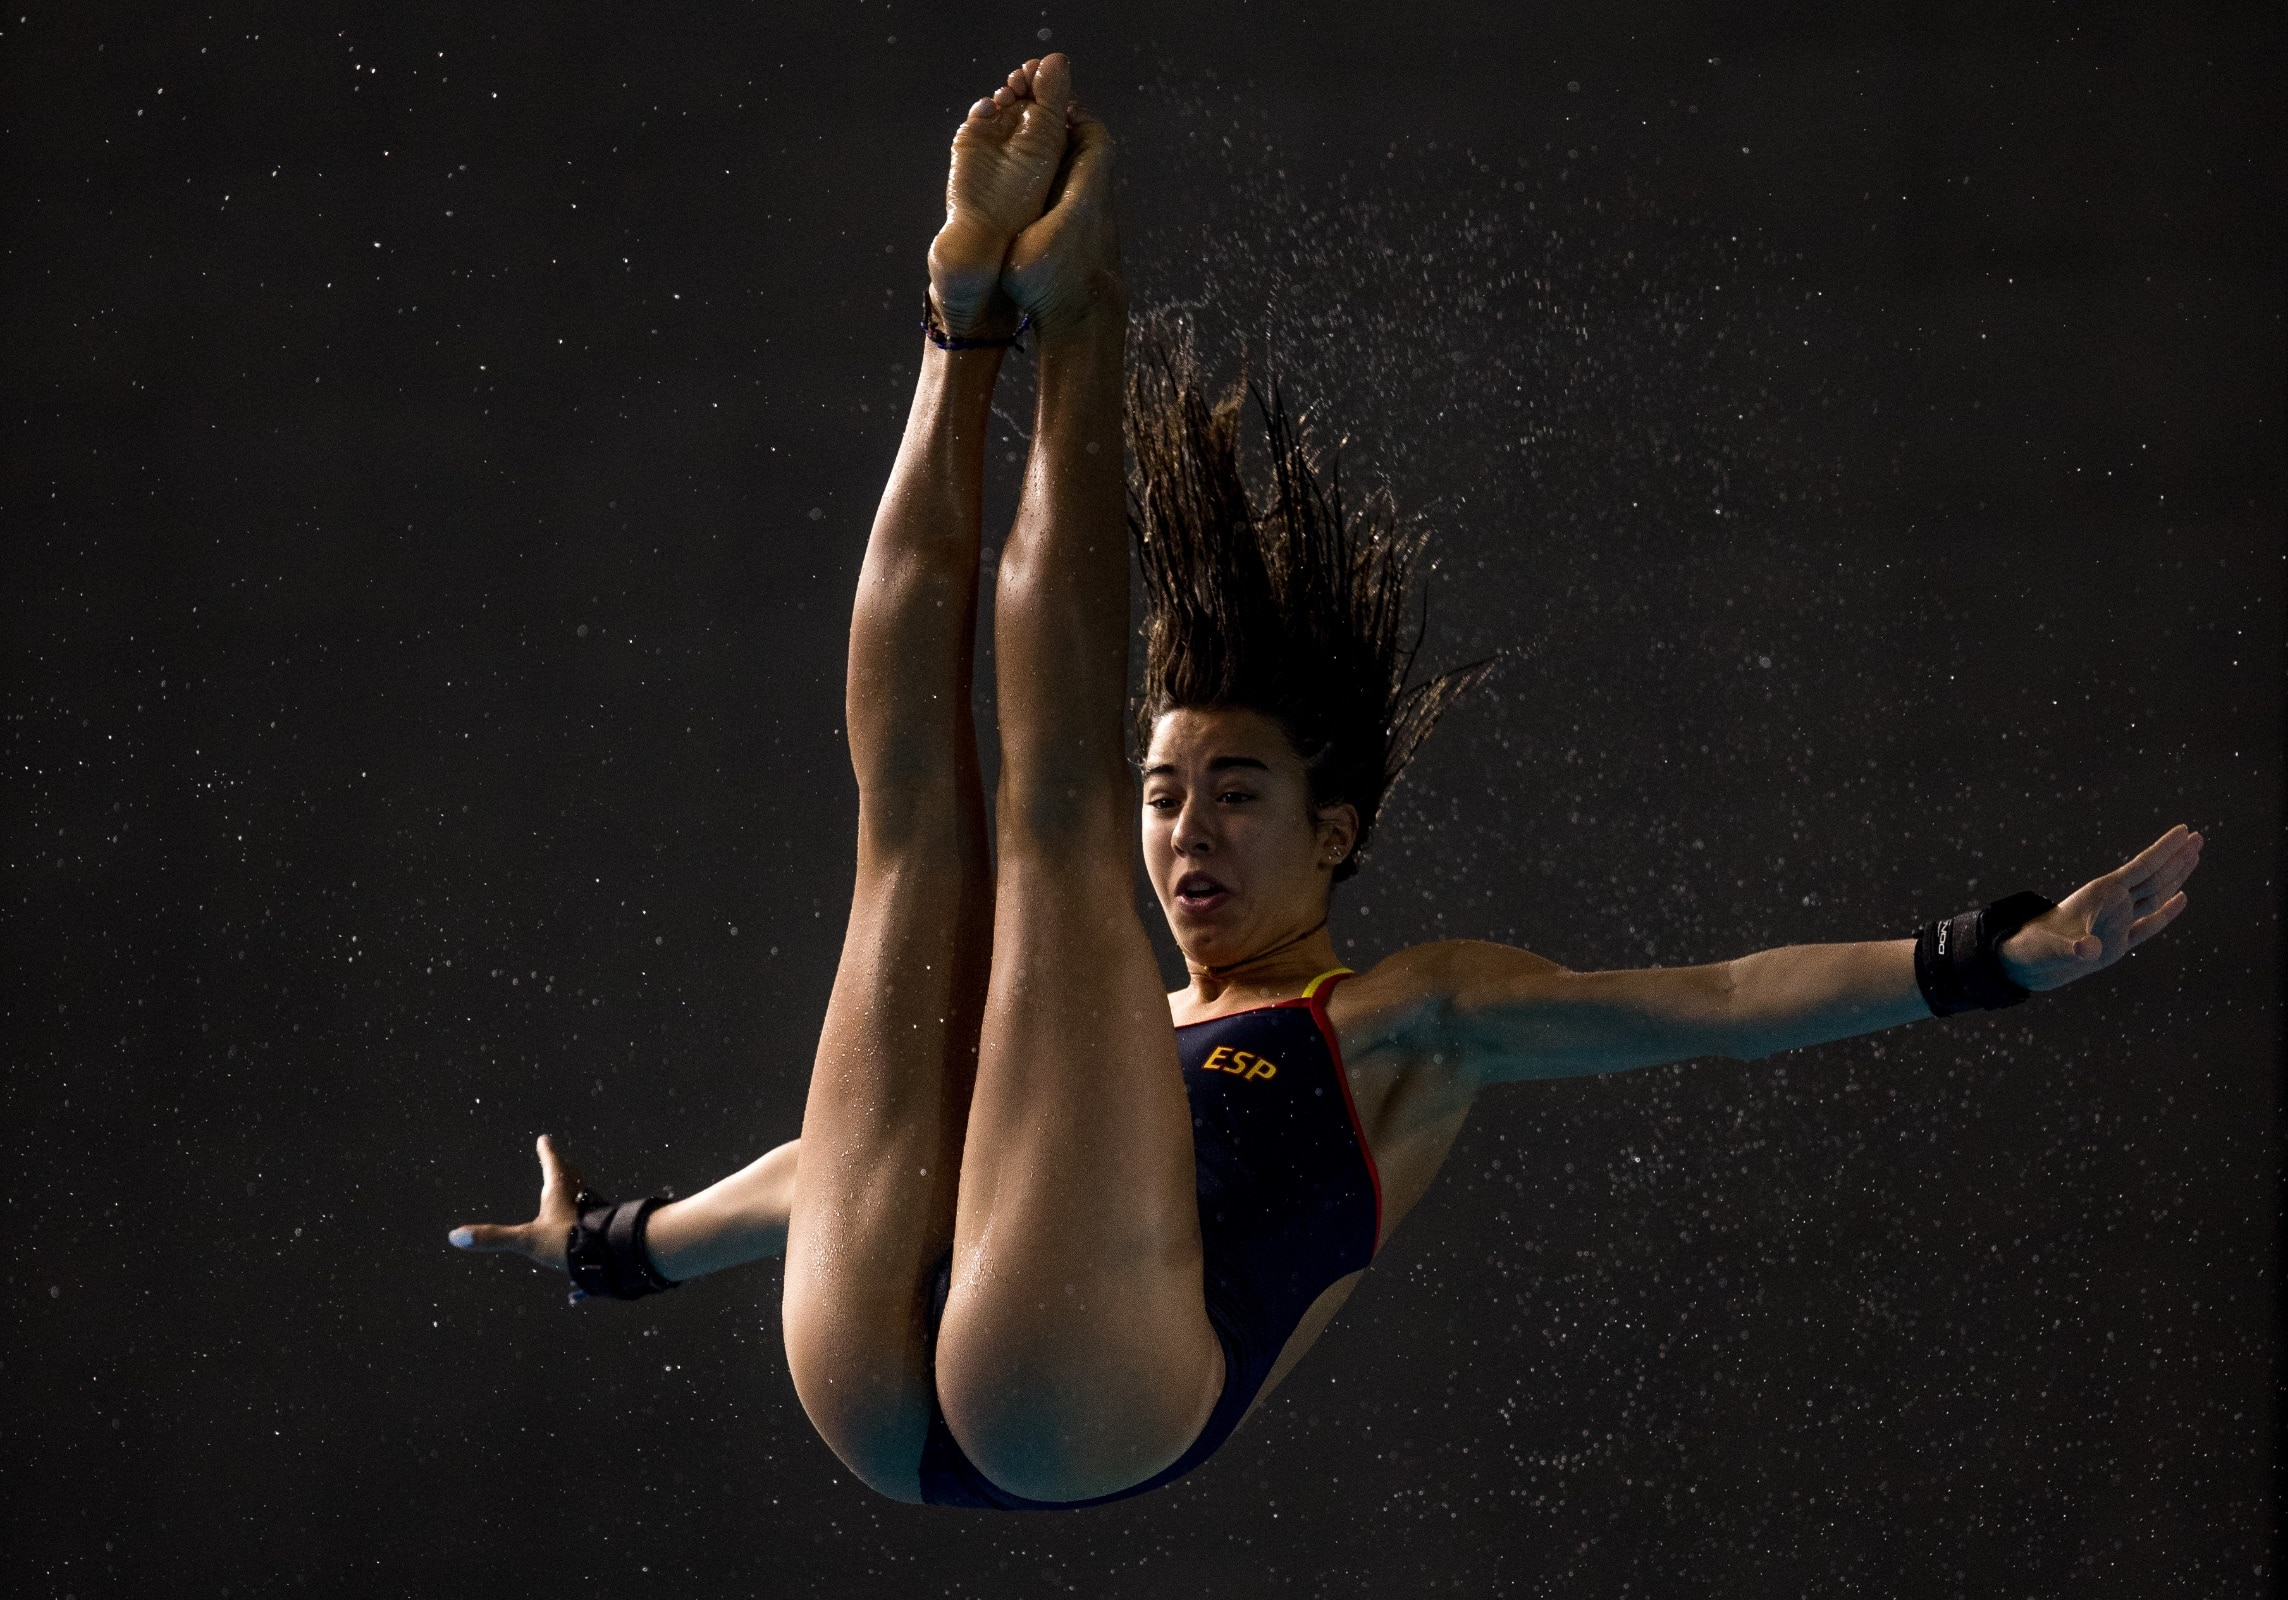 Buenos Aires 2018 - Diving - Women's 3m Springboard